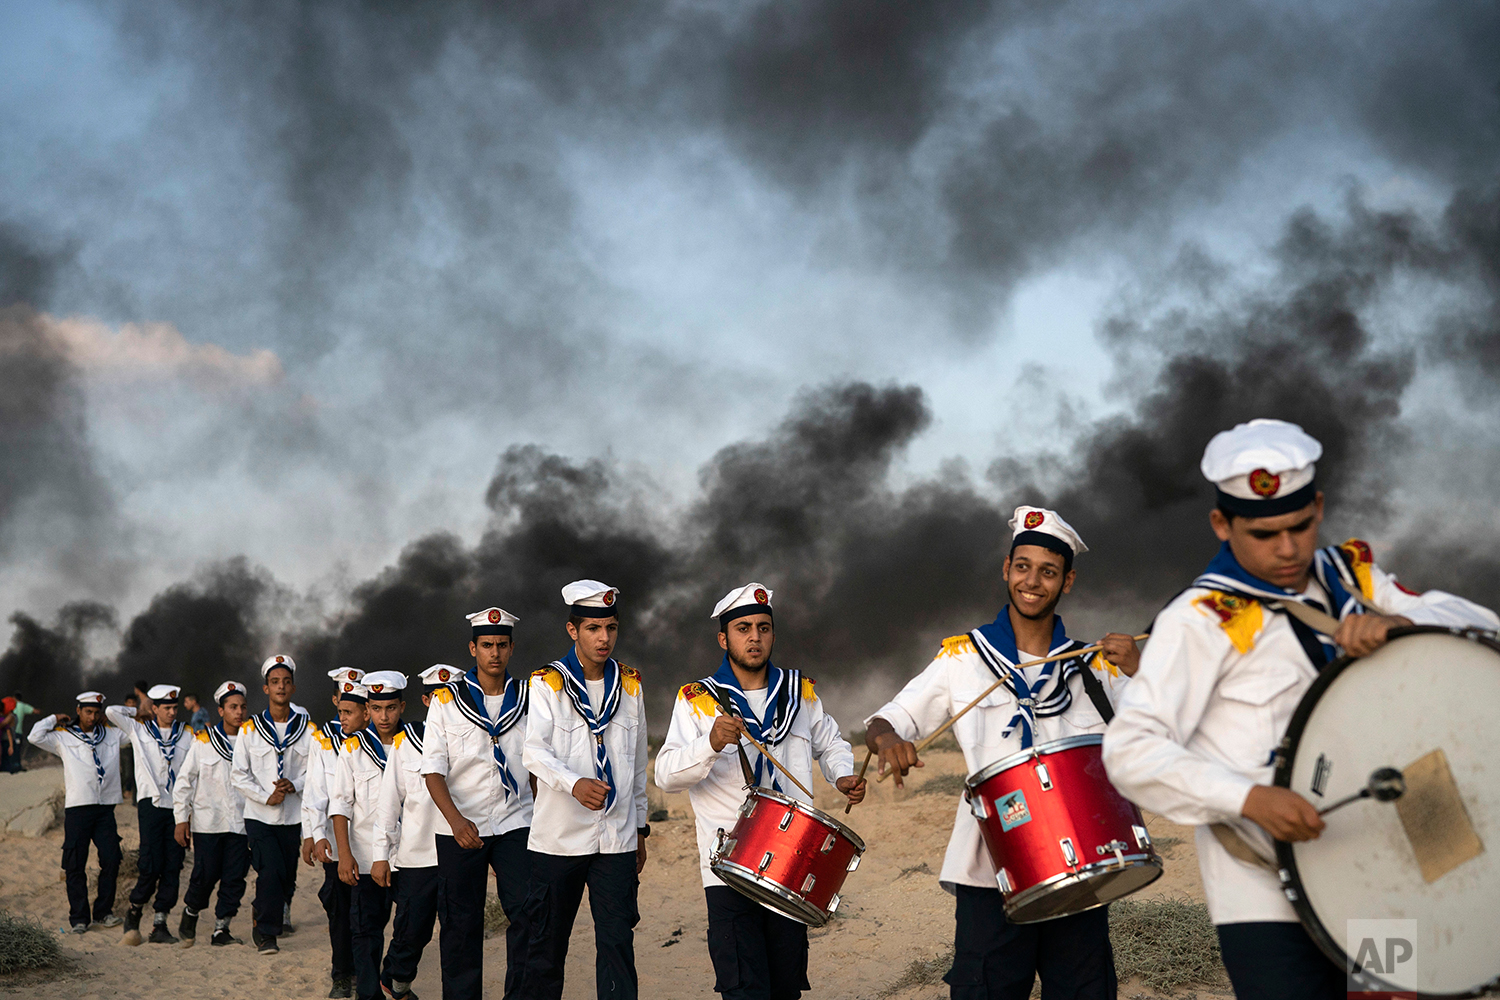 Palestinian boy scouts march during a protest on the beach near the border with Israel in Beit Lahiya, northern Gaza Strip, Monday, Sept. 10, 2018. (AP Photo/Felipe Dana)